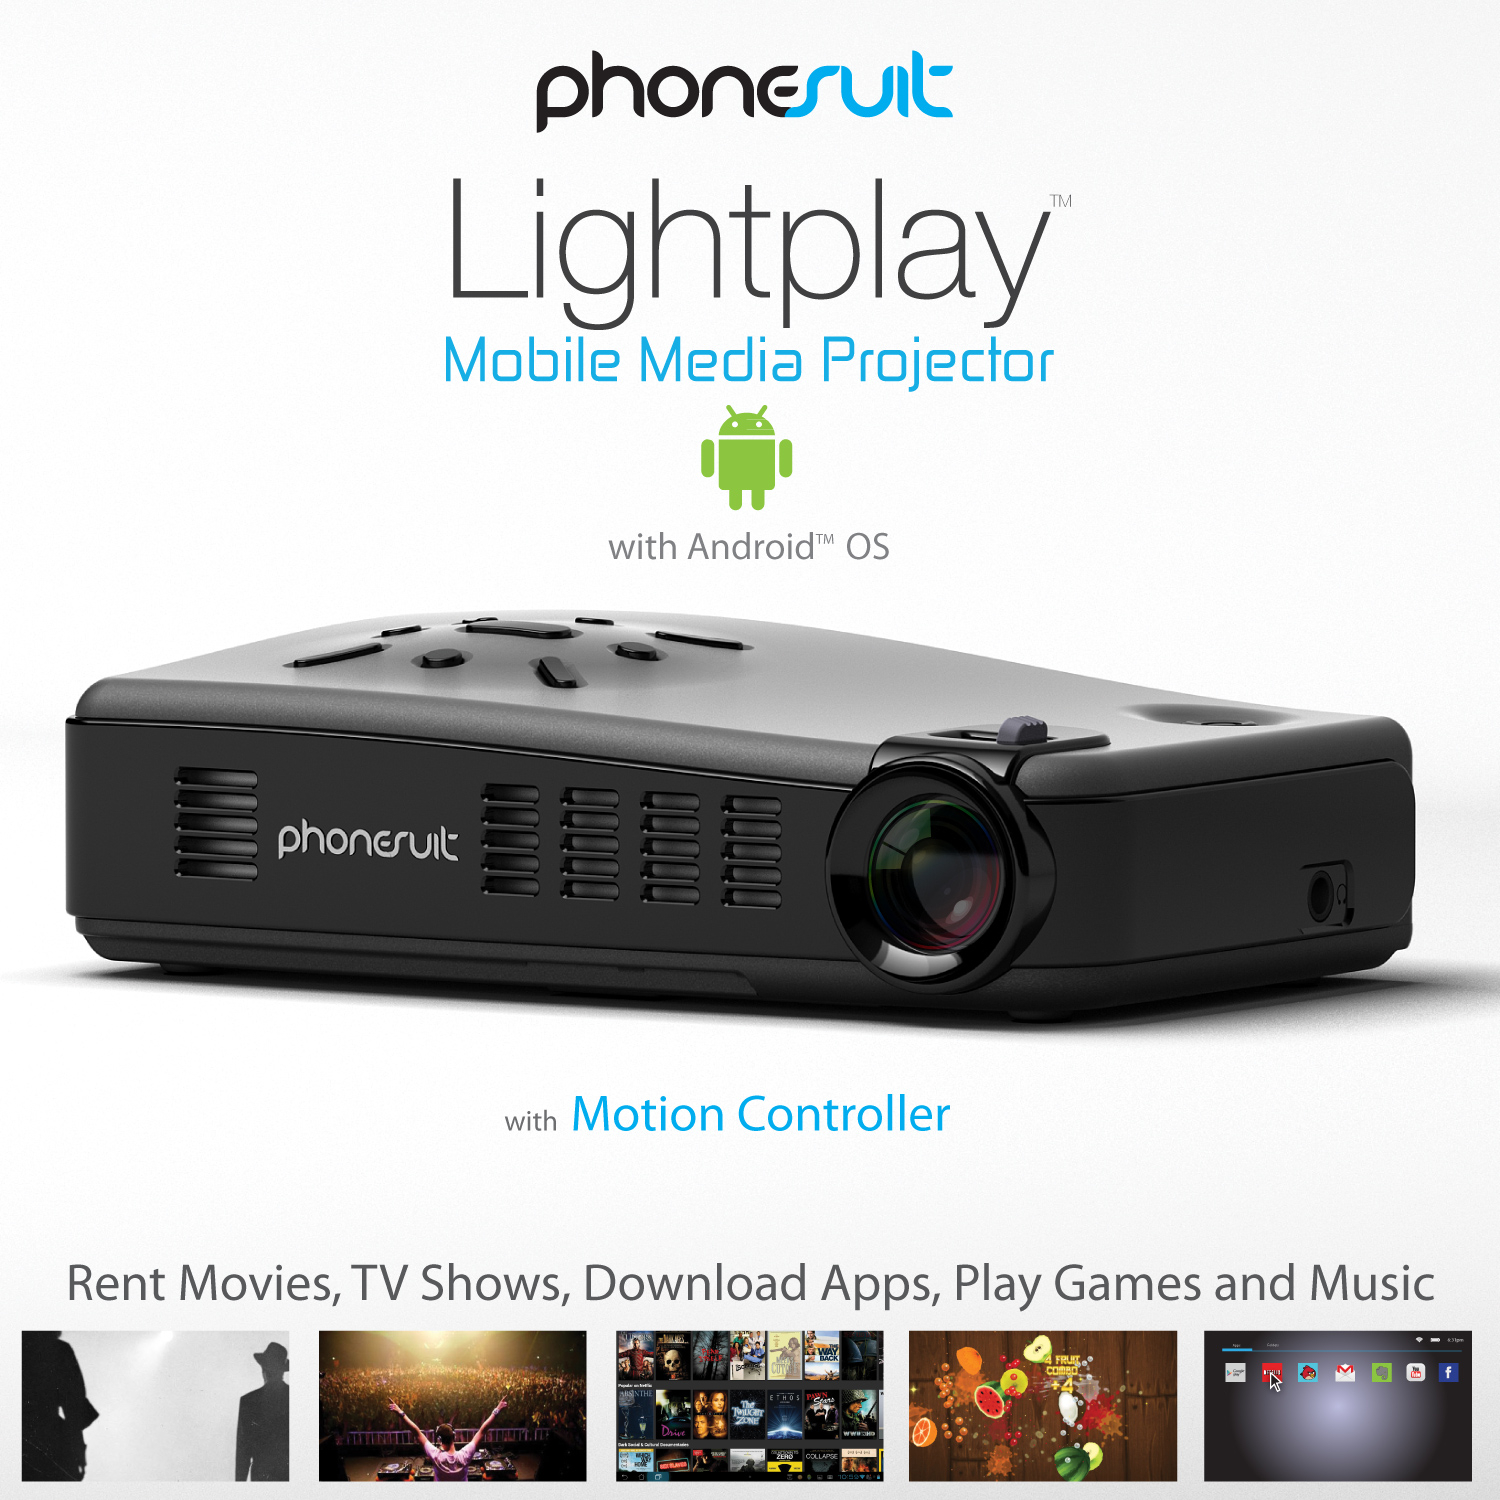 Phonesuit lightplay smart pico hd projector hd for Hd pico projector